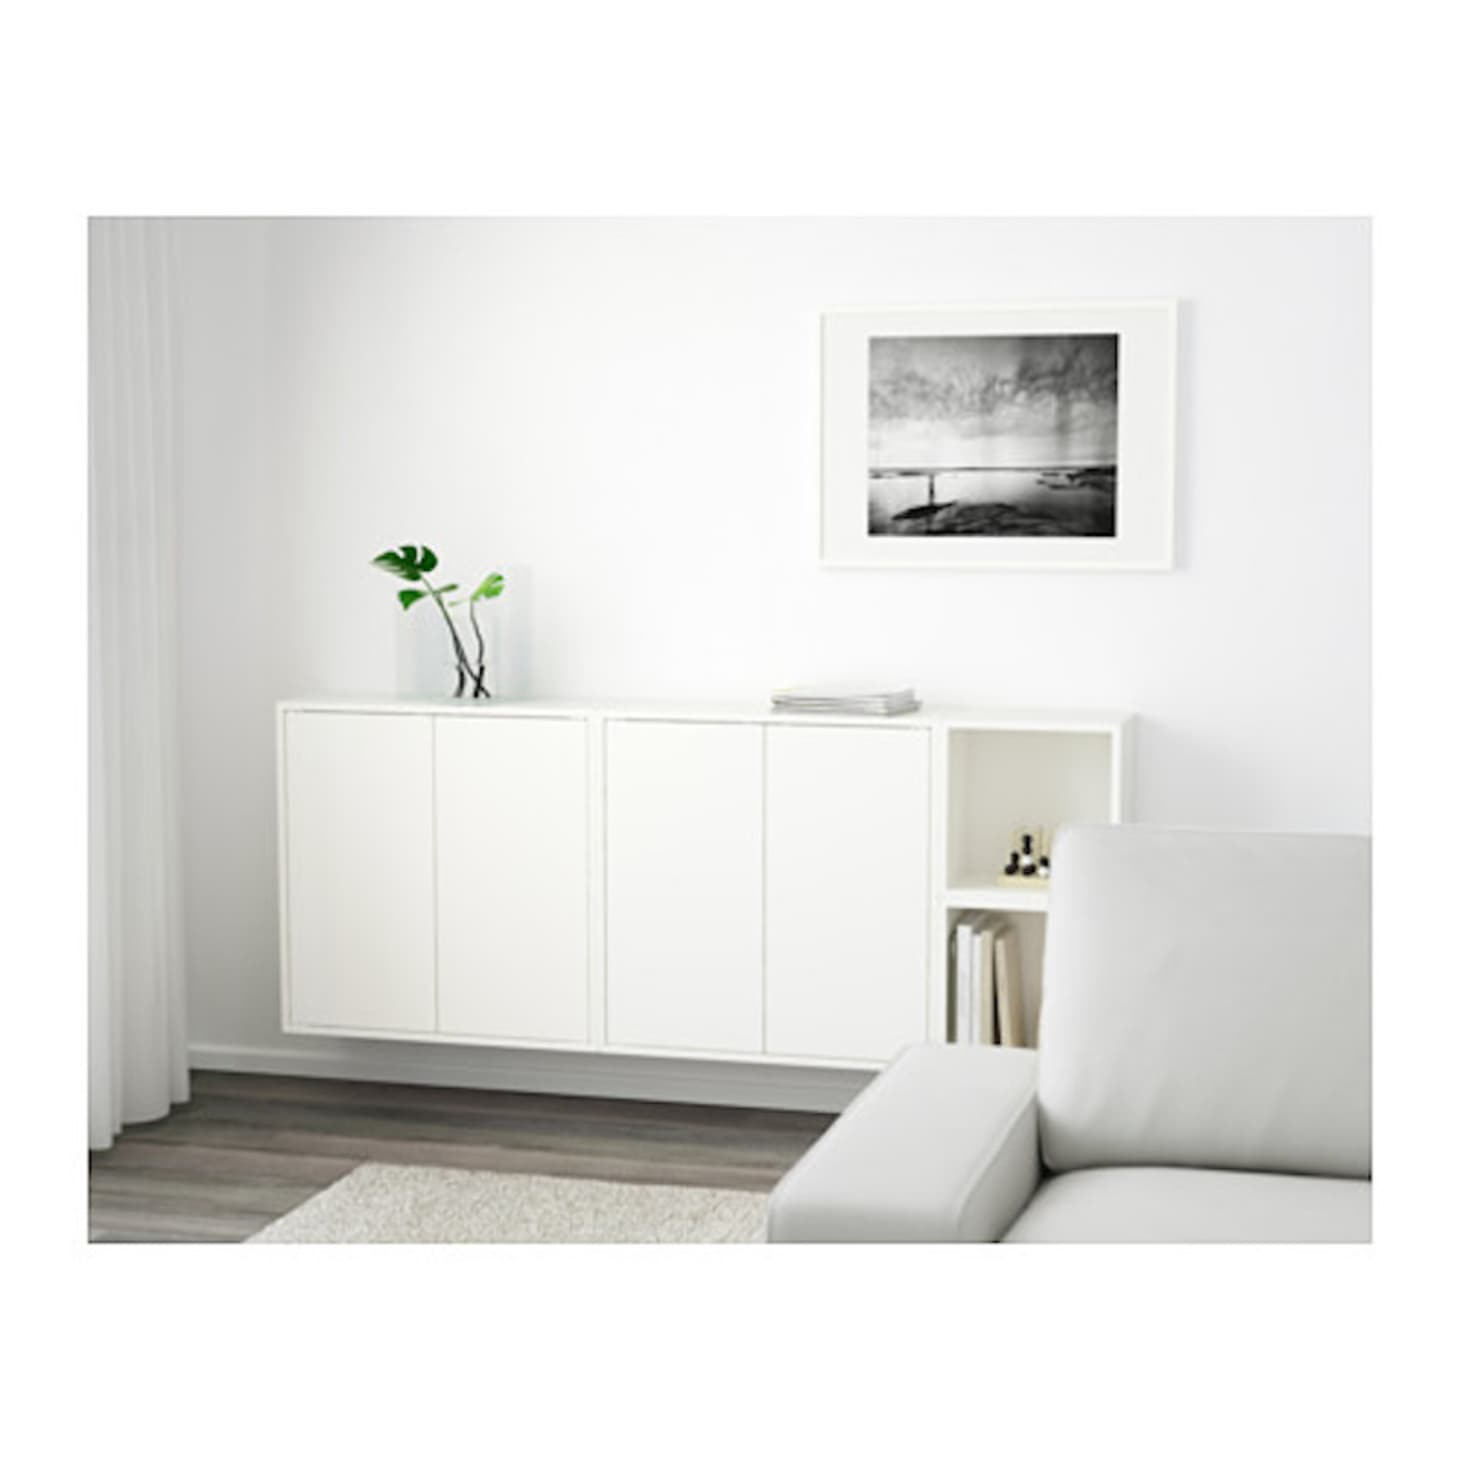 10 Best Wall Mounted Cabinets Nightstands Apartment Therapy